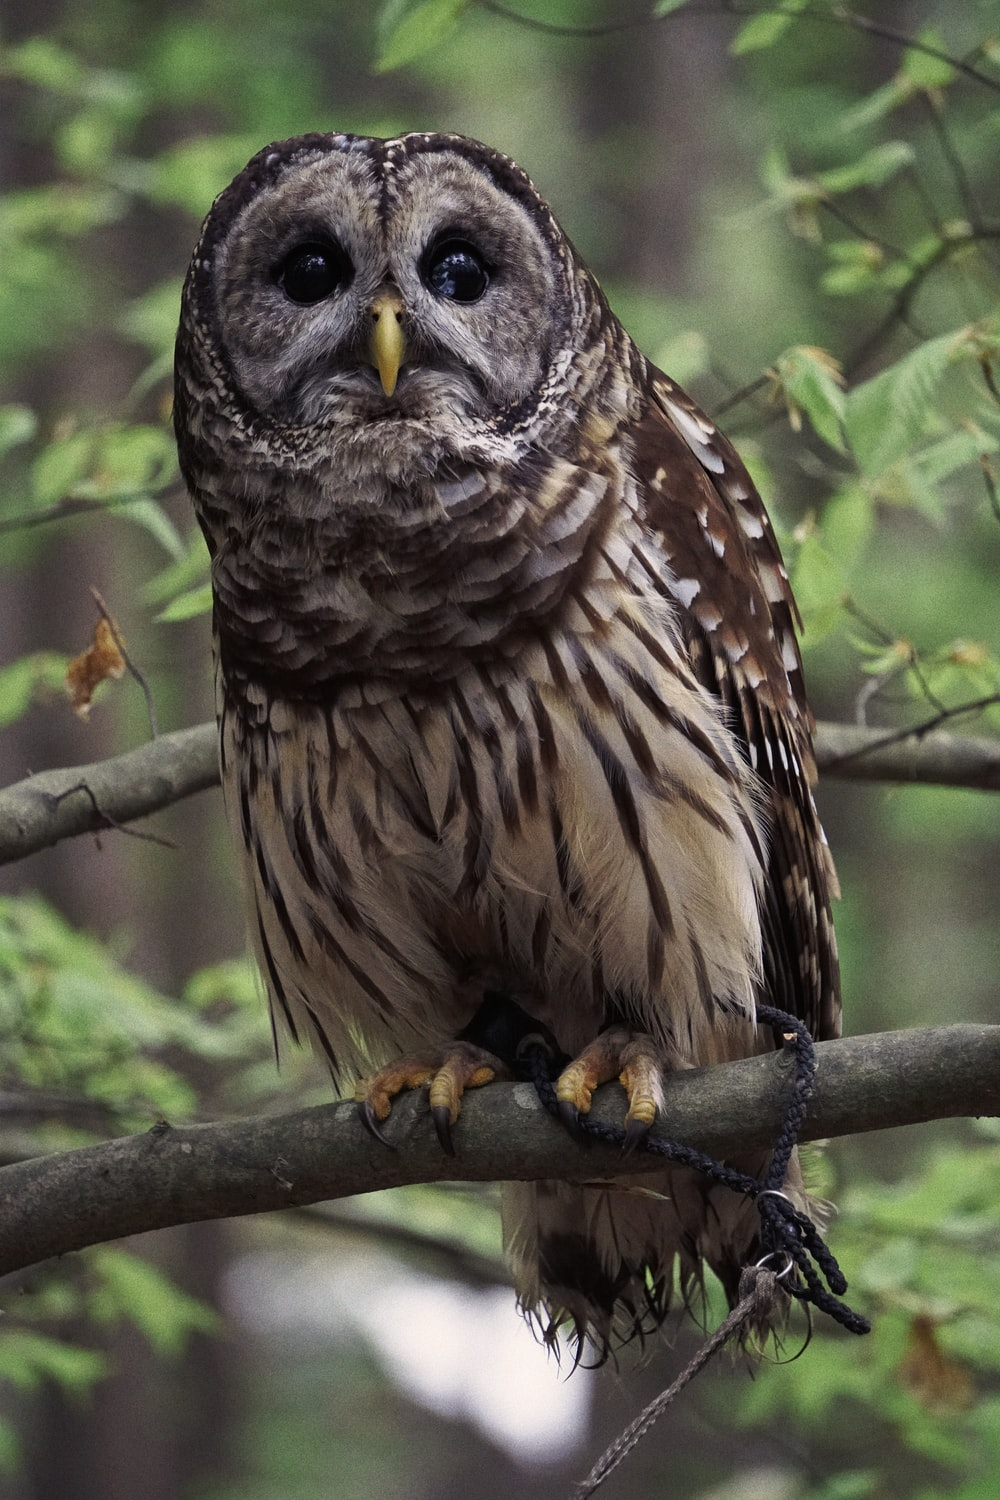 brown owl perched on tree